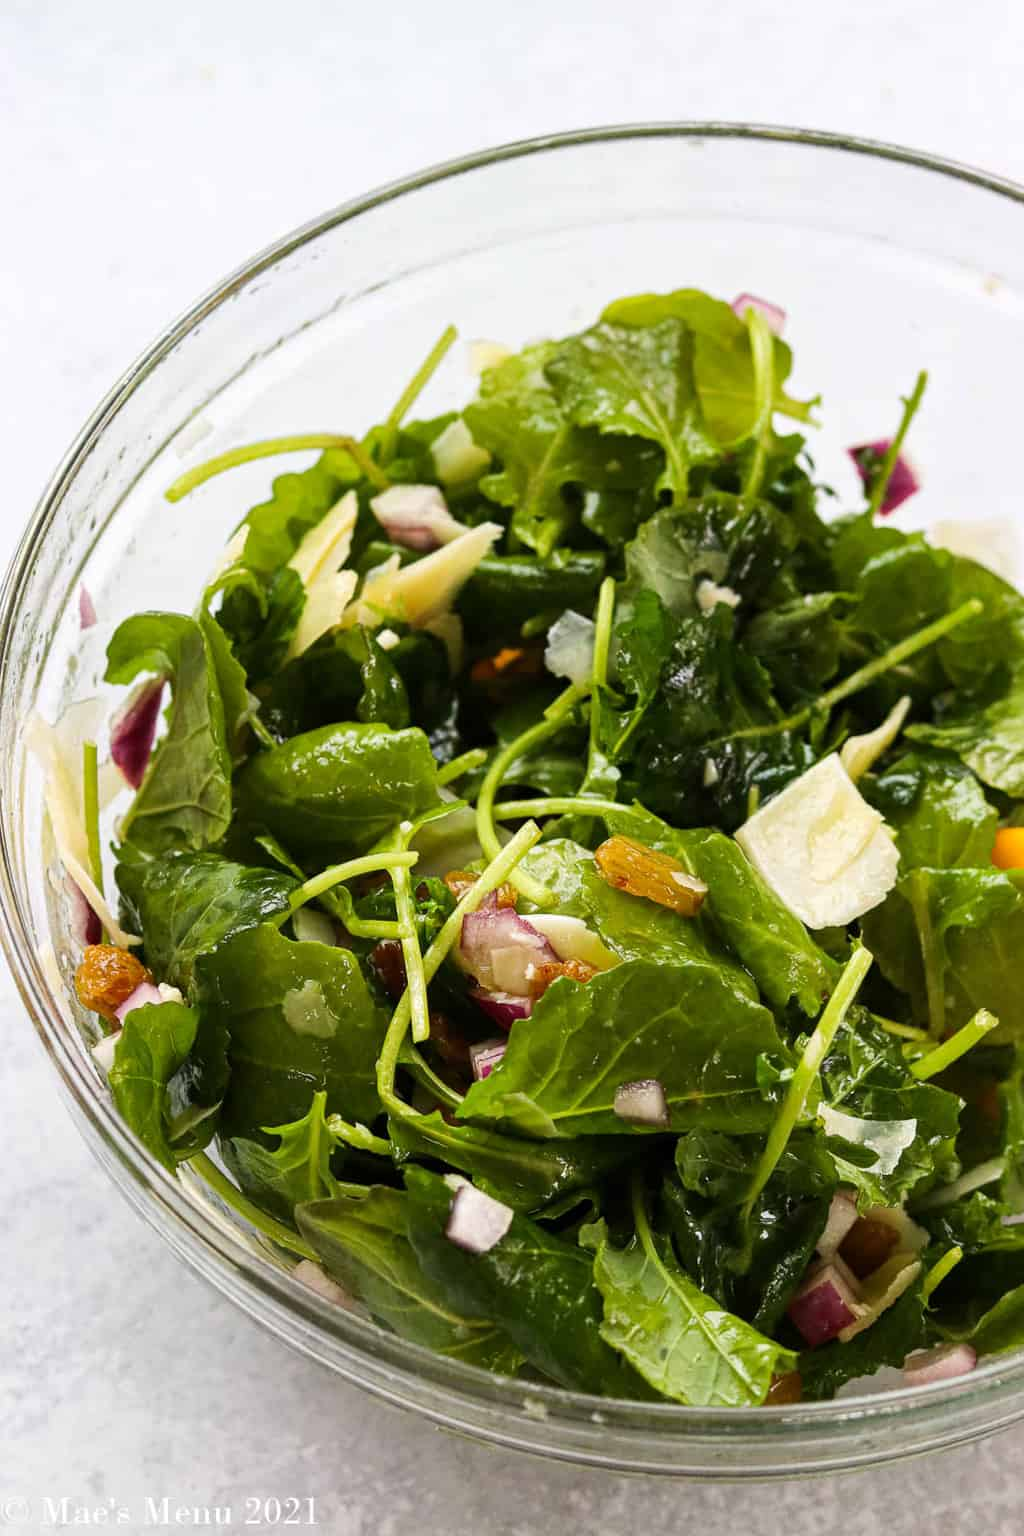 A mixing bowl with greens and cheese tossed in salad dressing